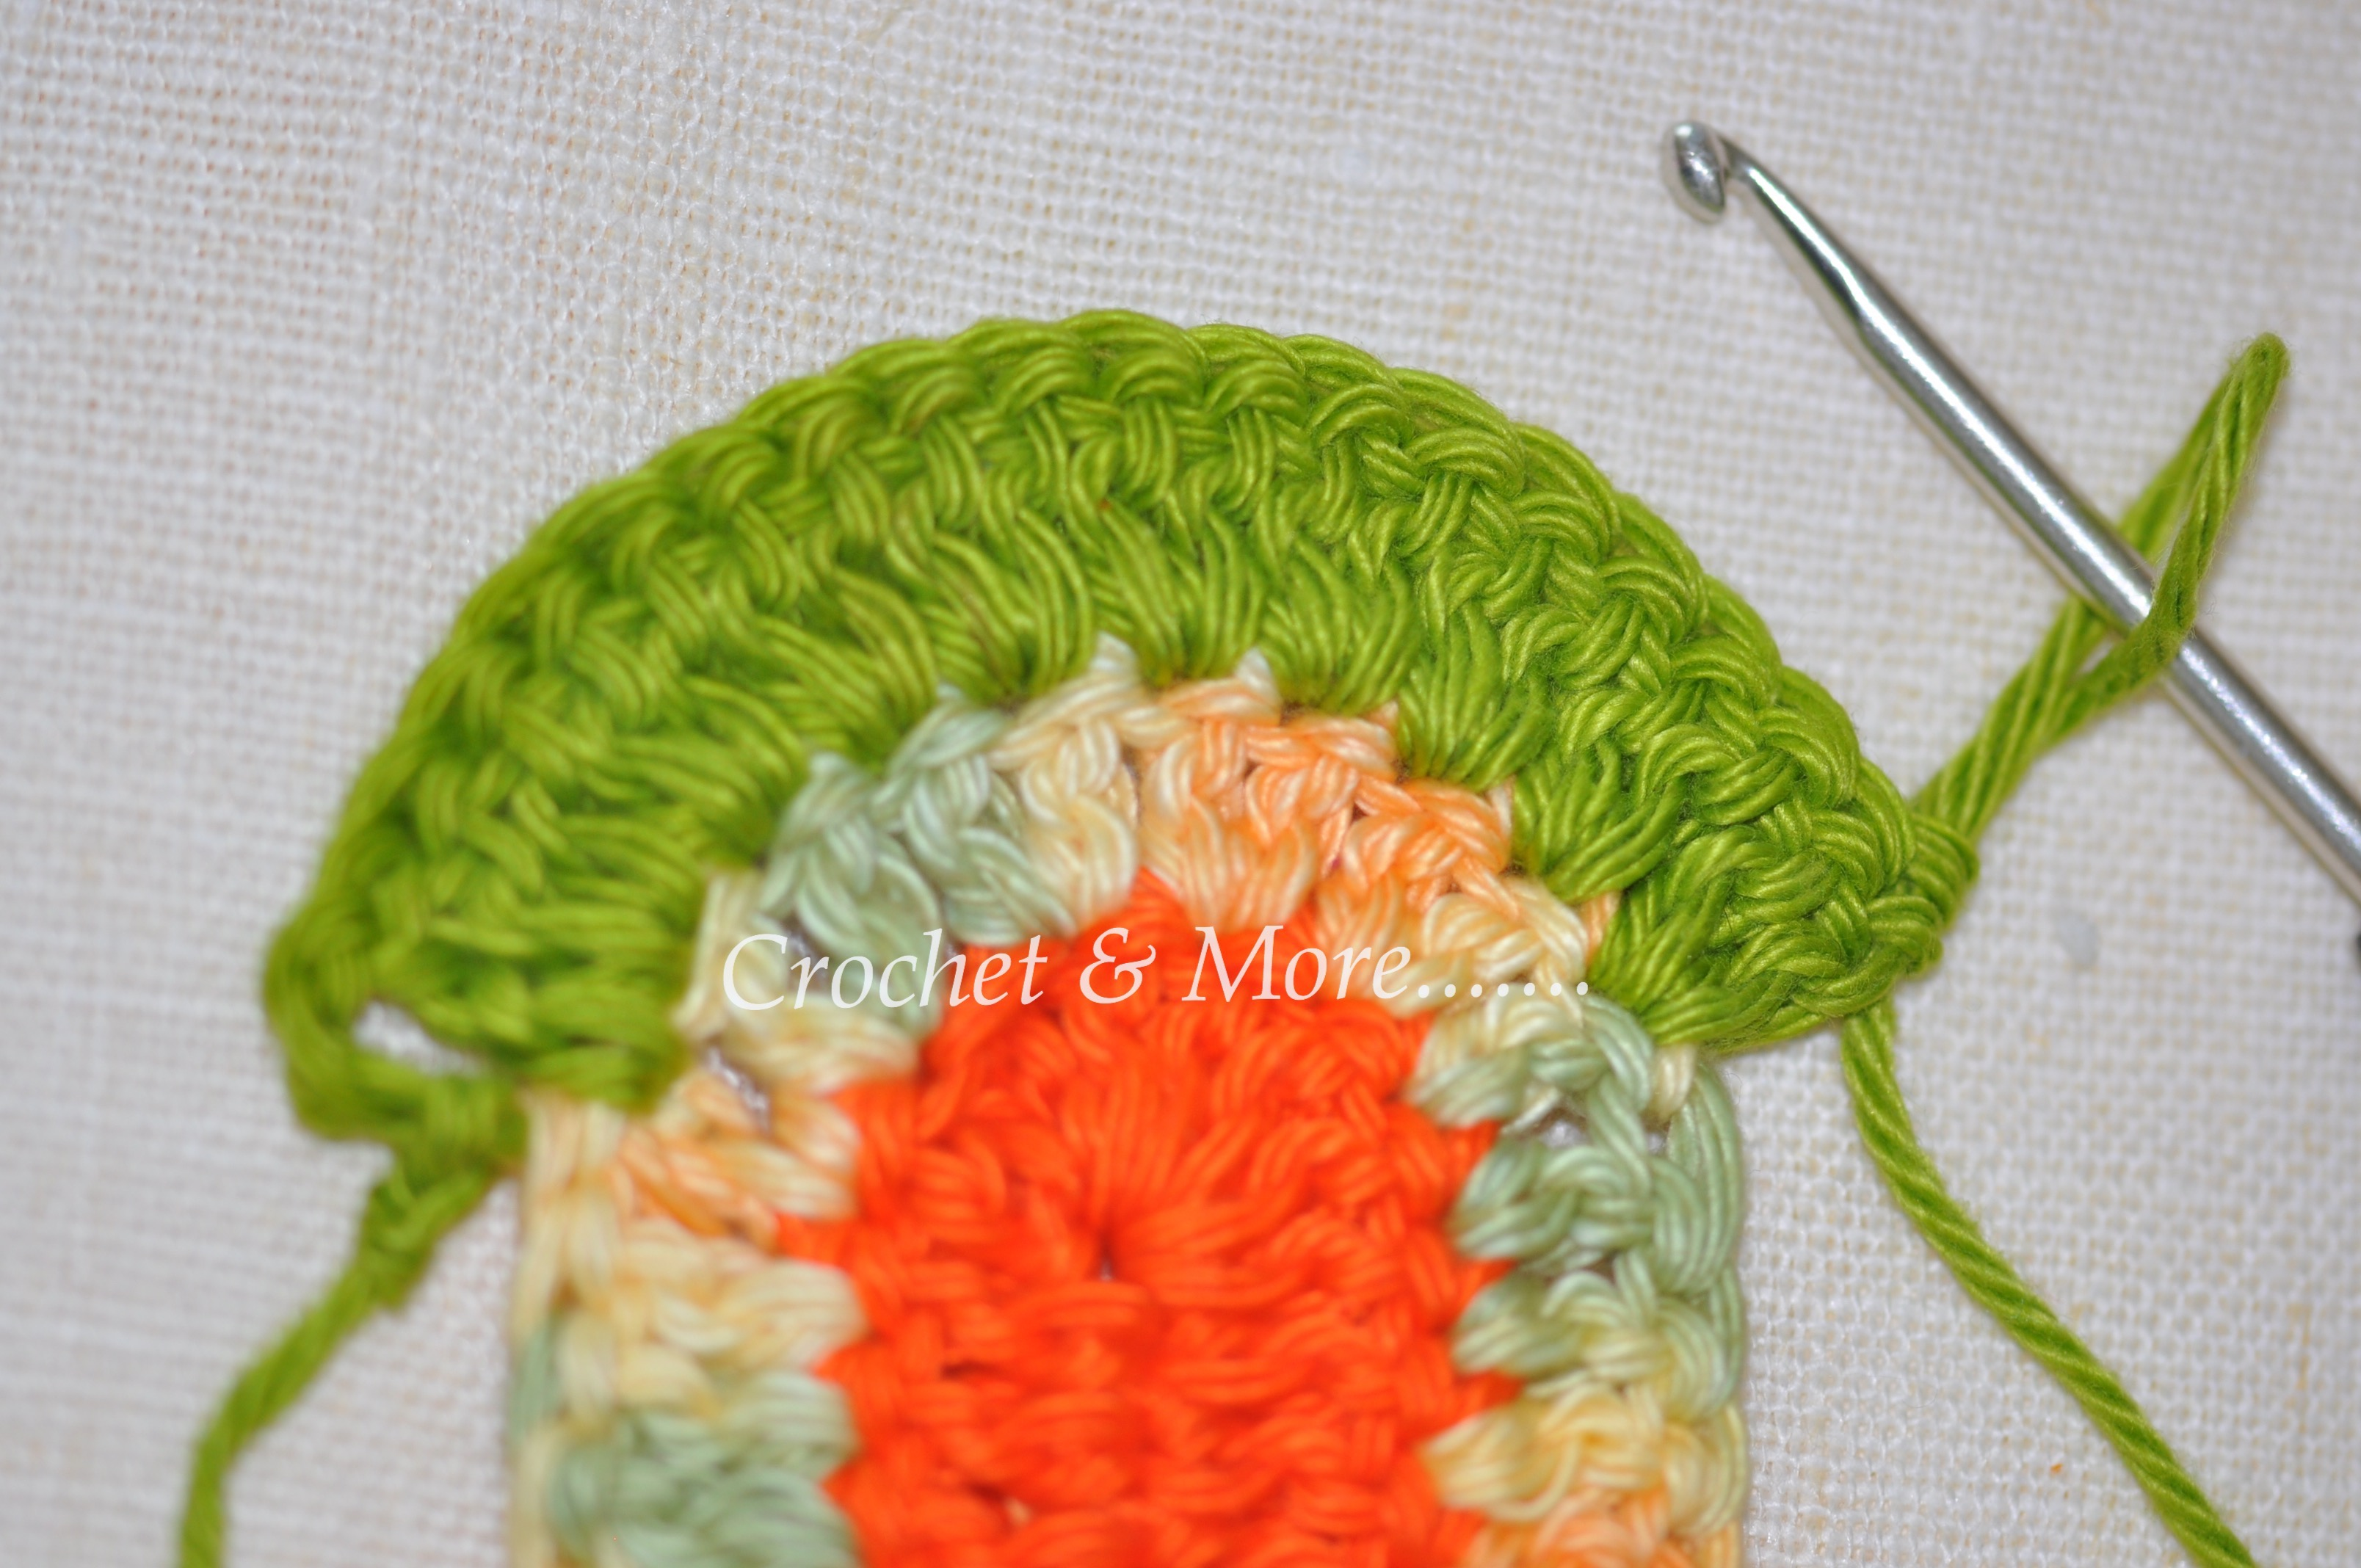 How to Crochet an Oval for Amigurumi | Shiny Happy World | 2136x3216